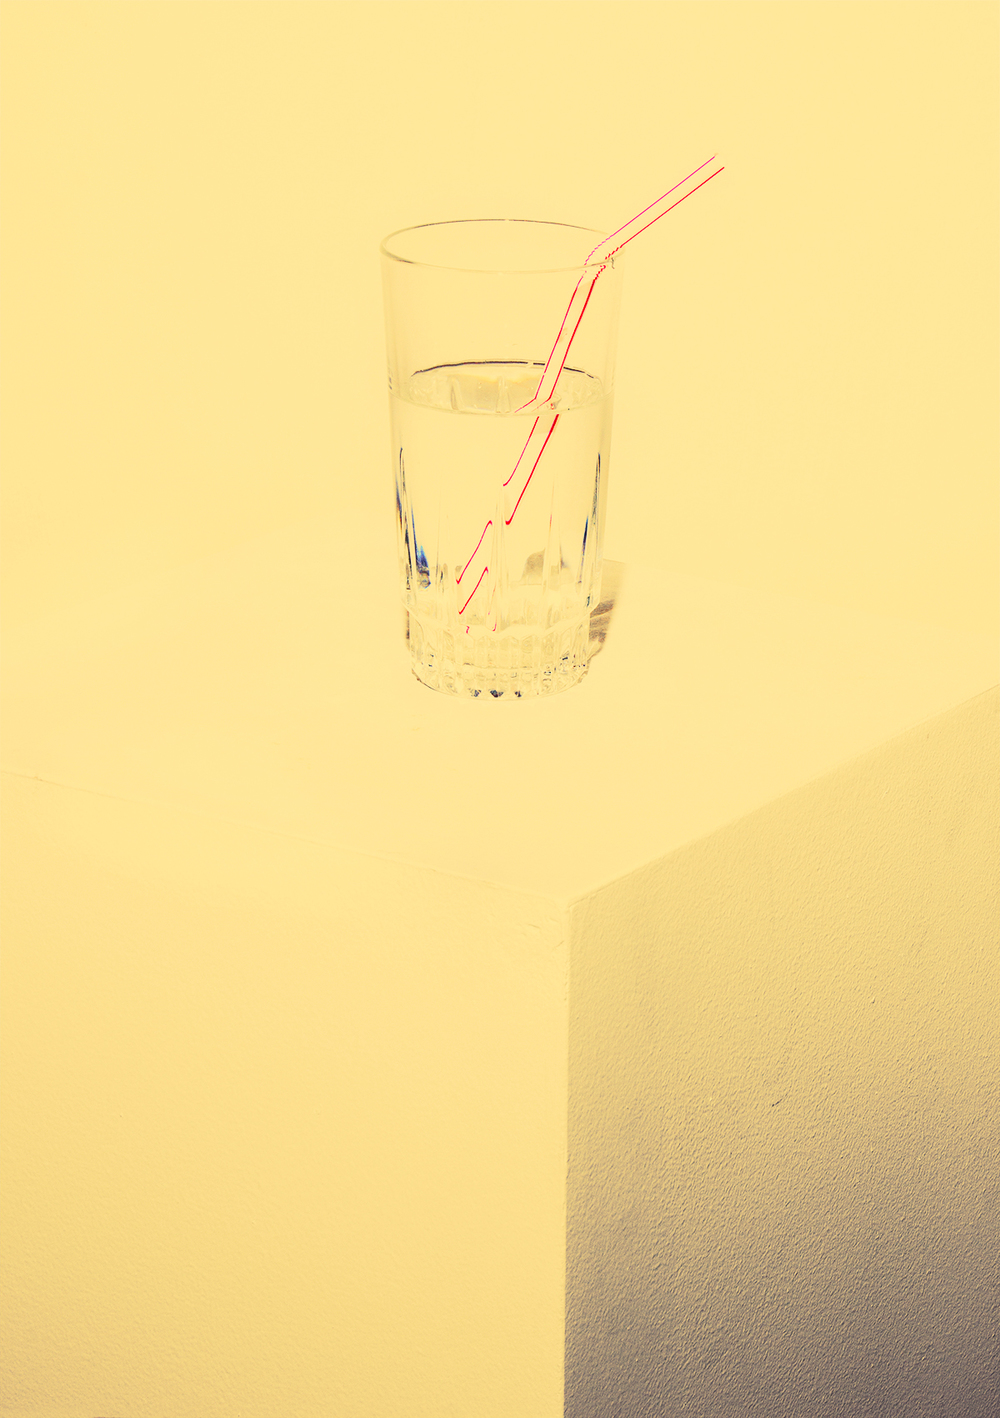 Liquid Diet and Straws by Daniel Hojnacki